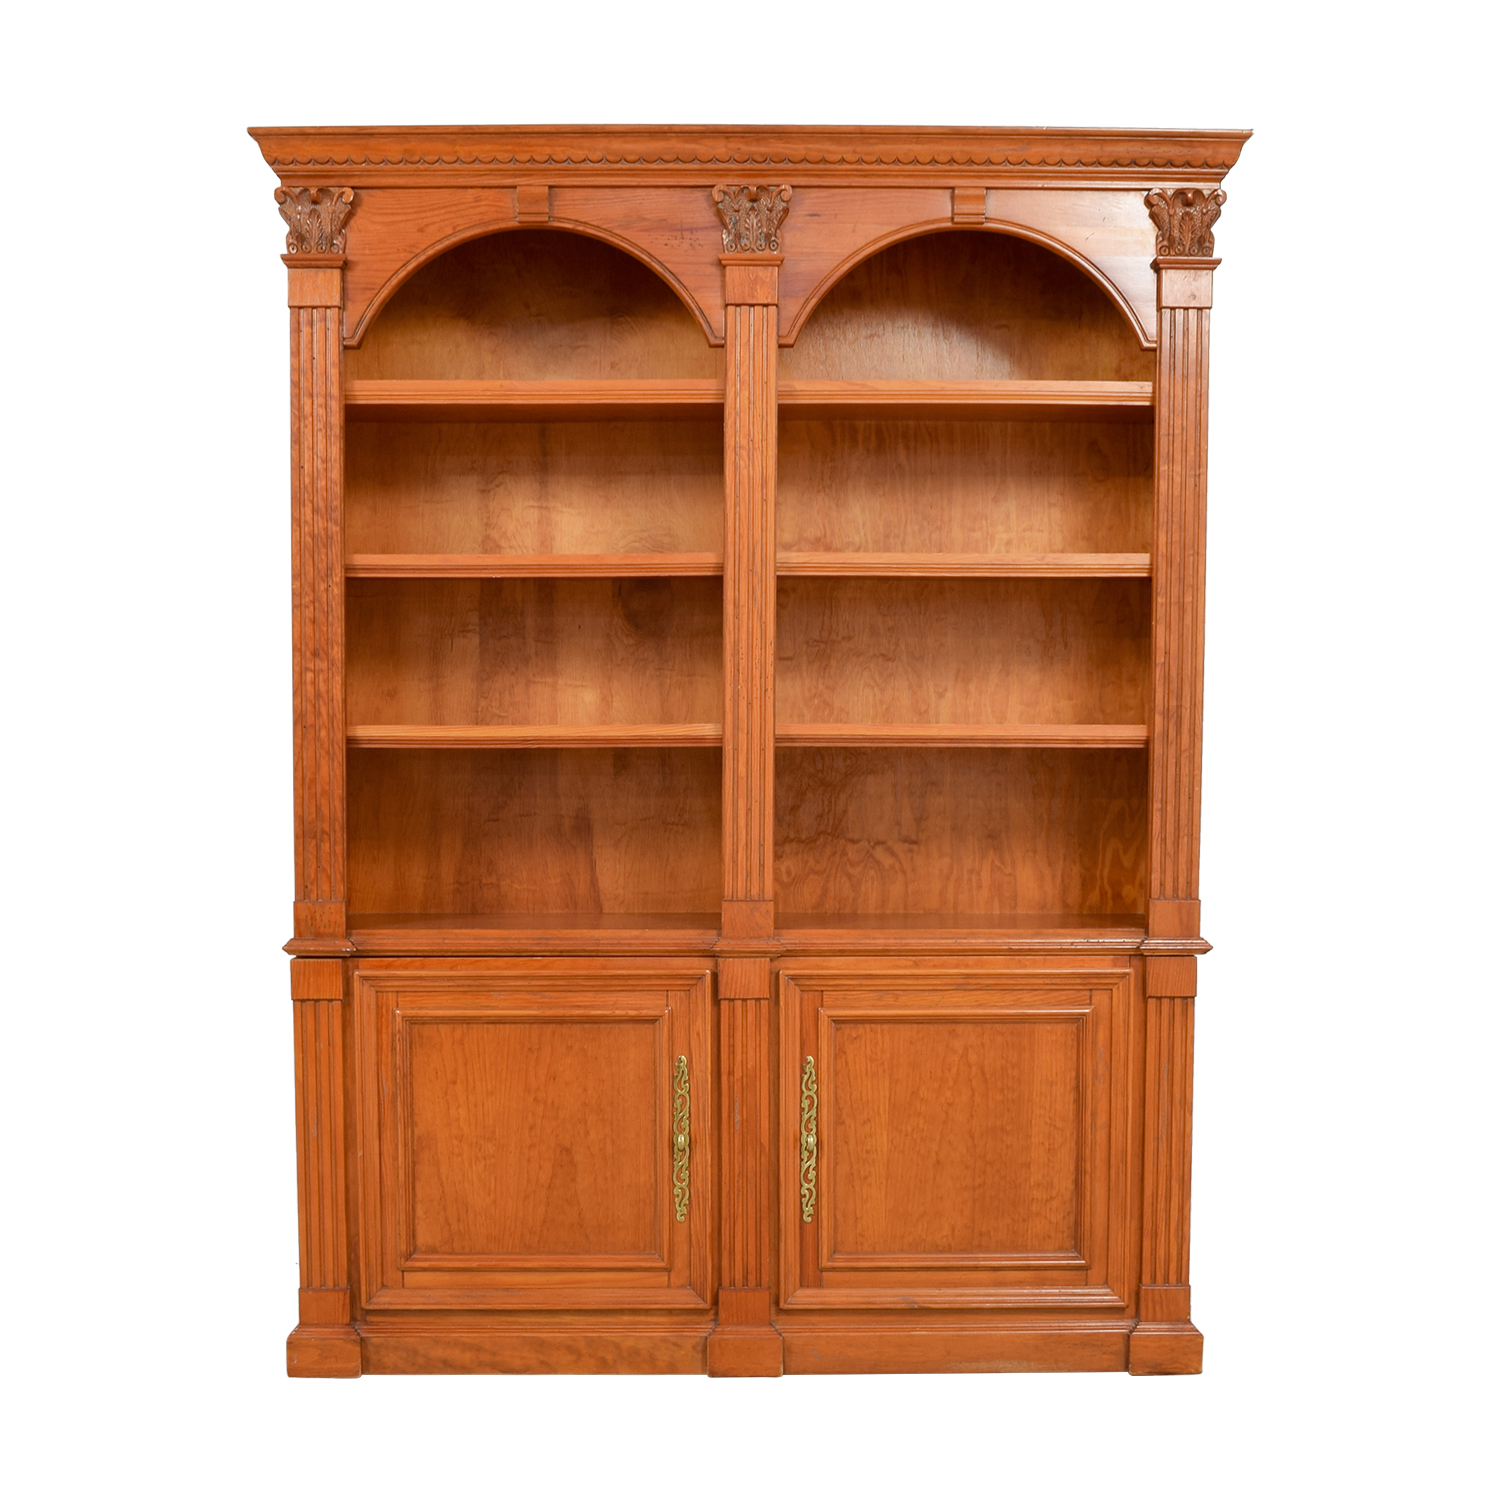 Hamilton Heritage Hamilton Heritage Double Bookcase with Storage for sale